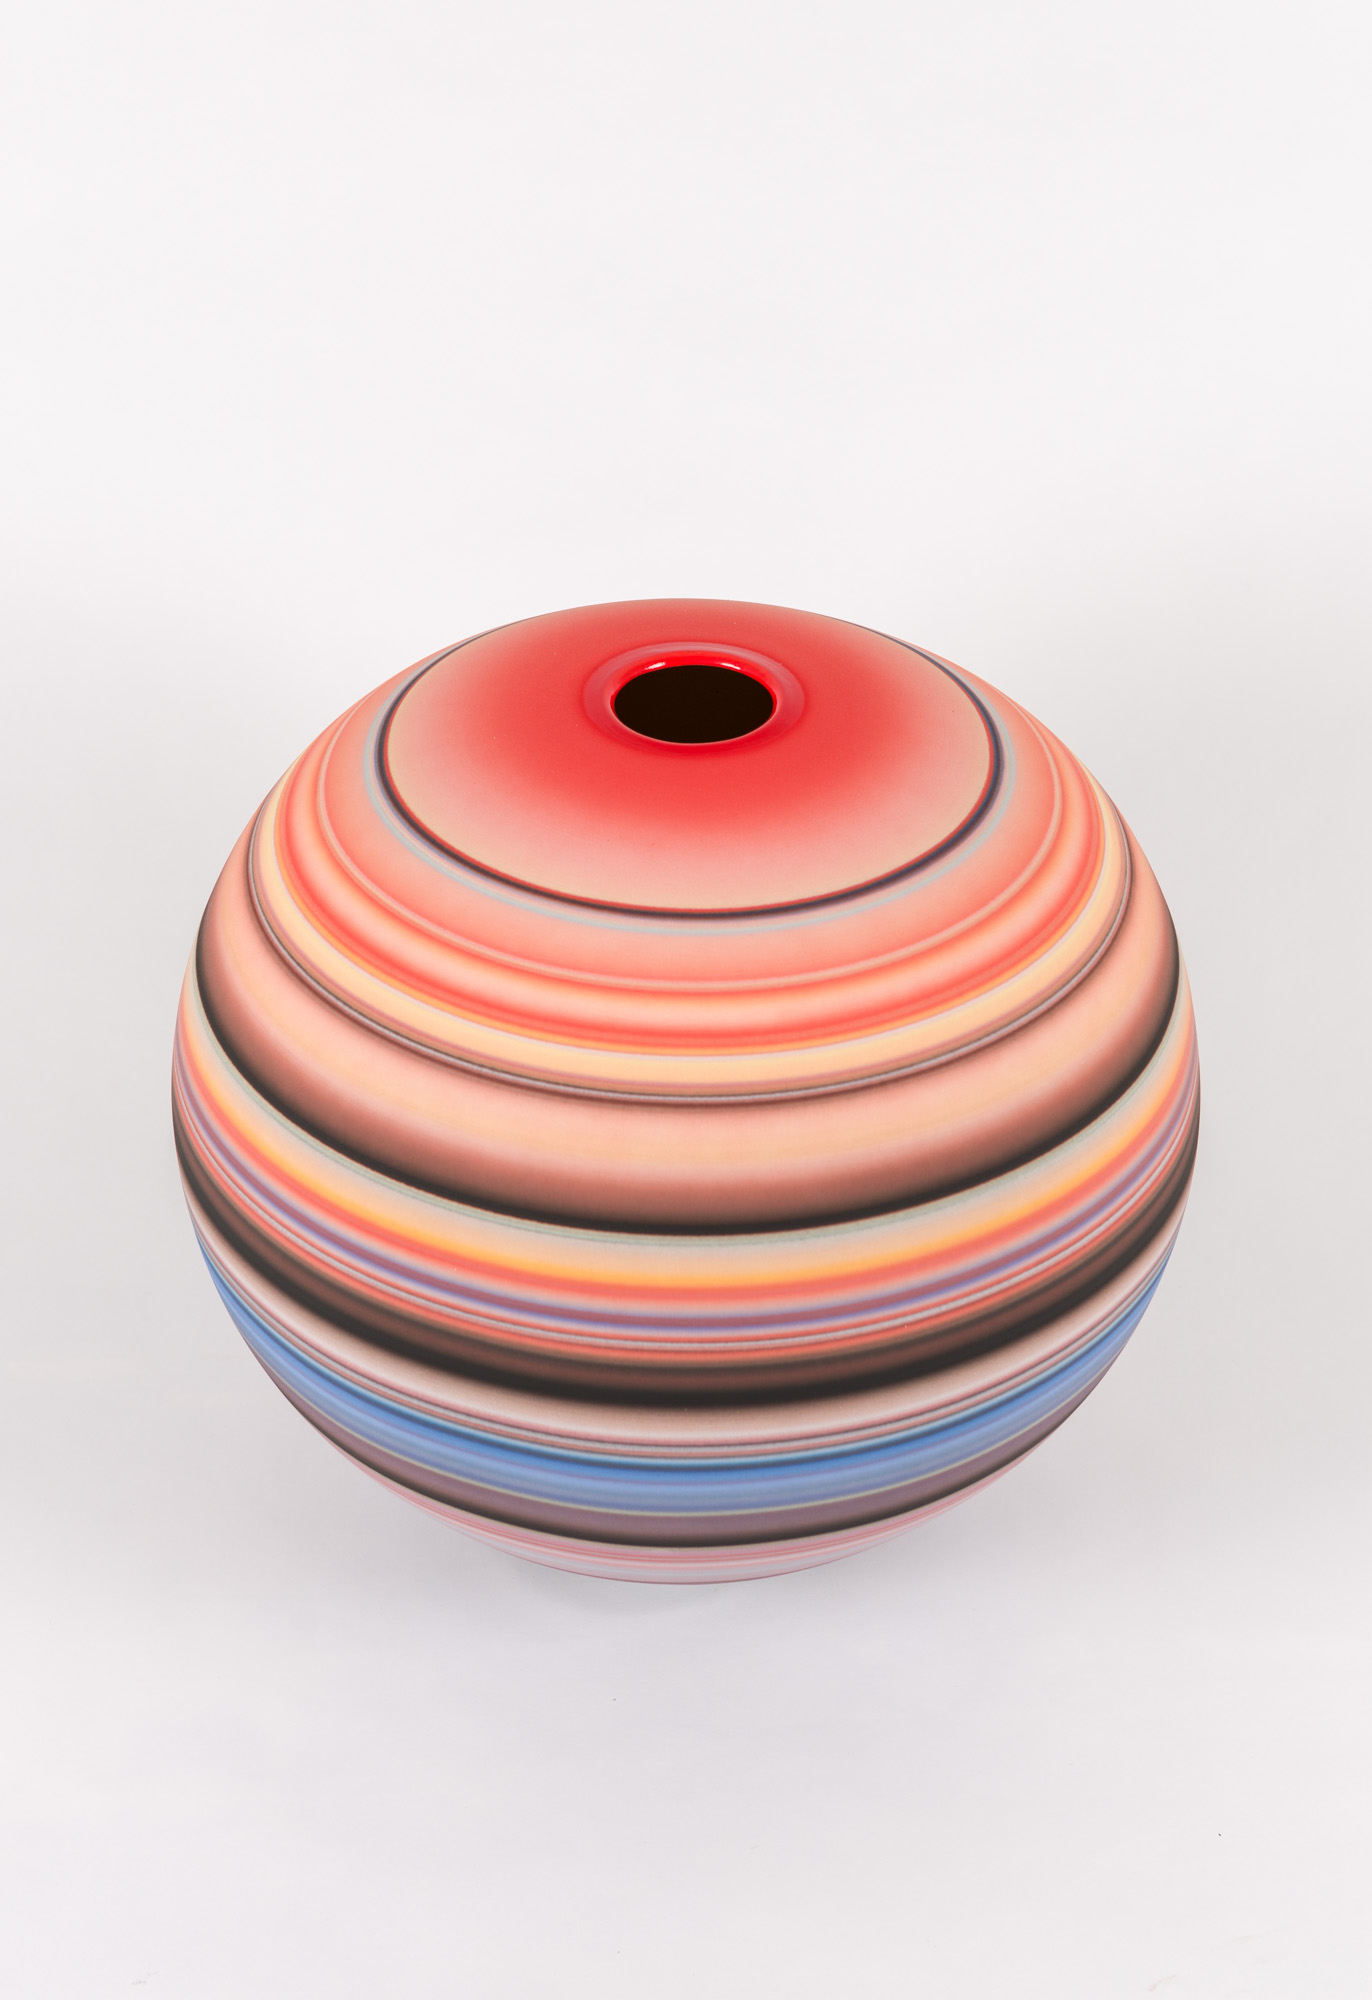 Accretion Series (round, red)  , 2019  Glazed Earthenware  16 x 16 x 16 in.